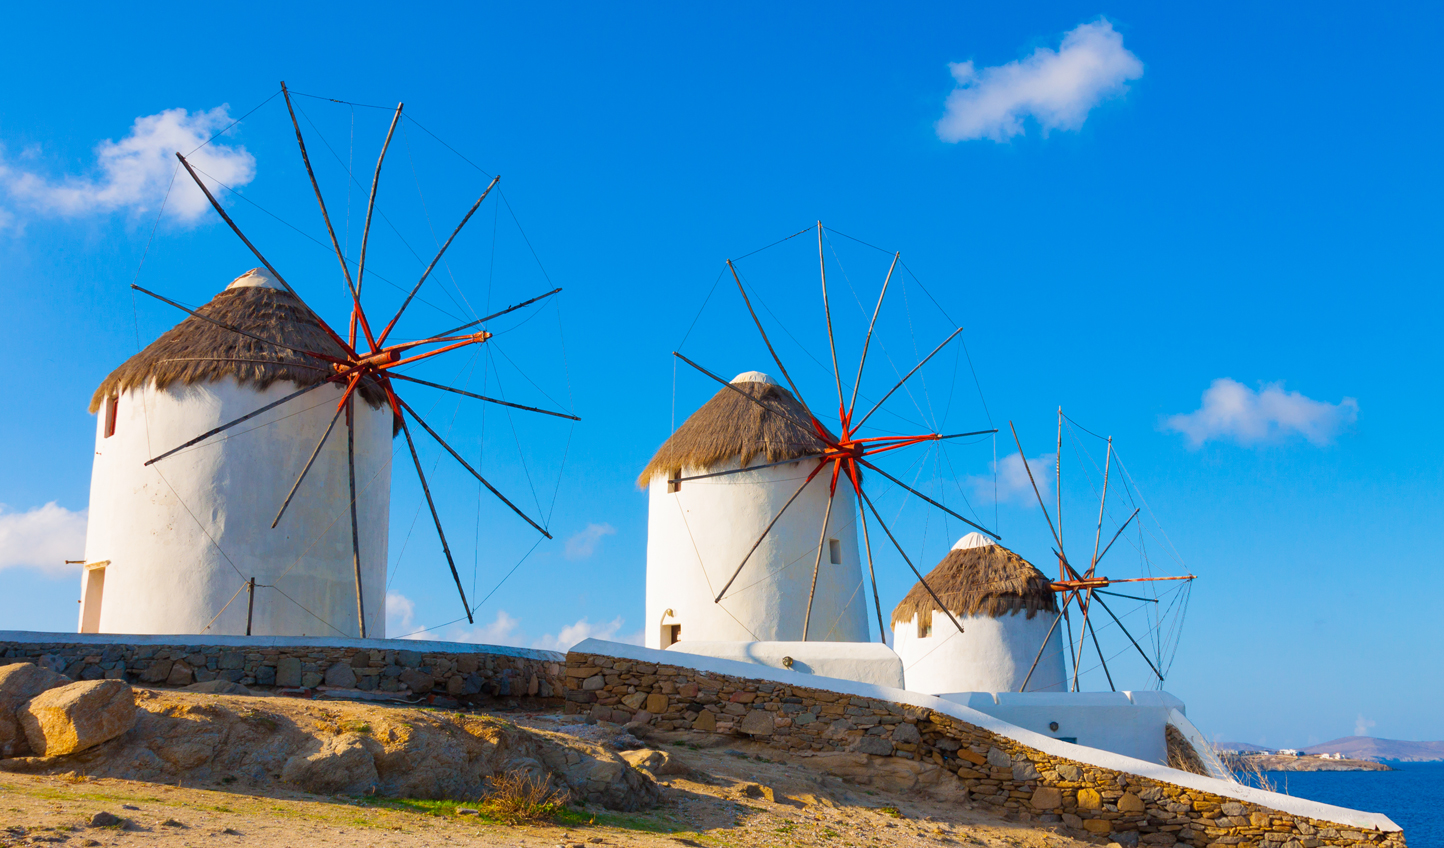 See the 16th-century windmills